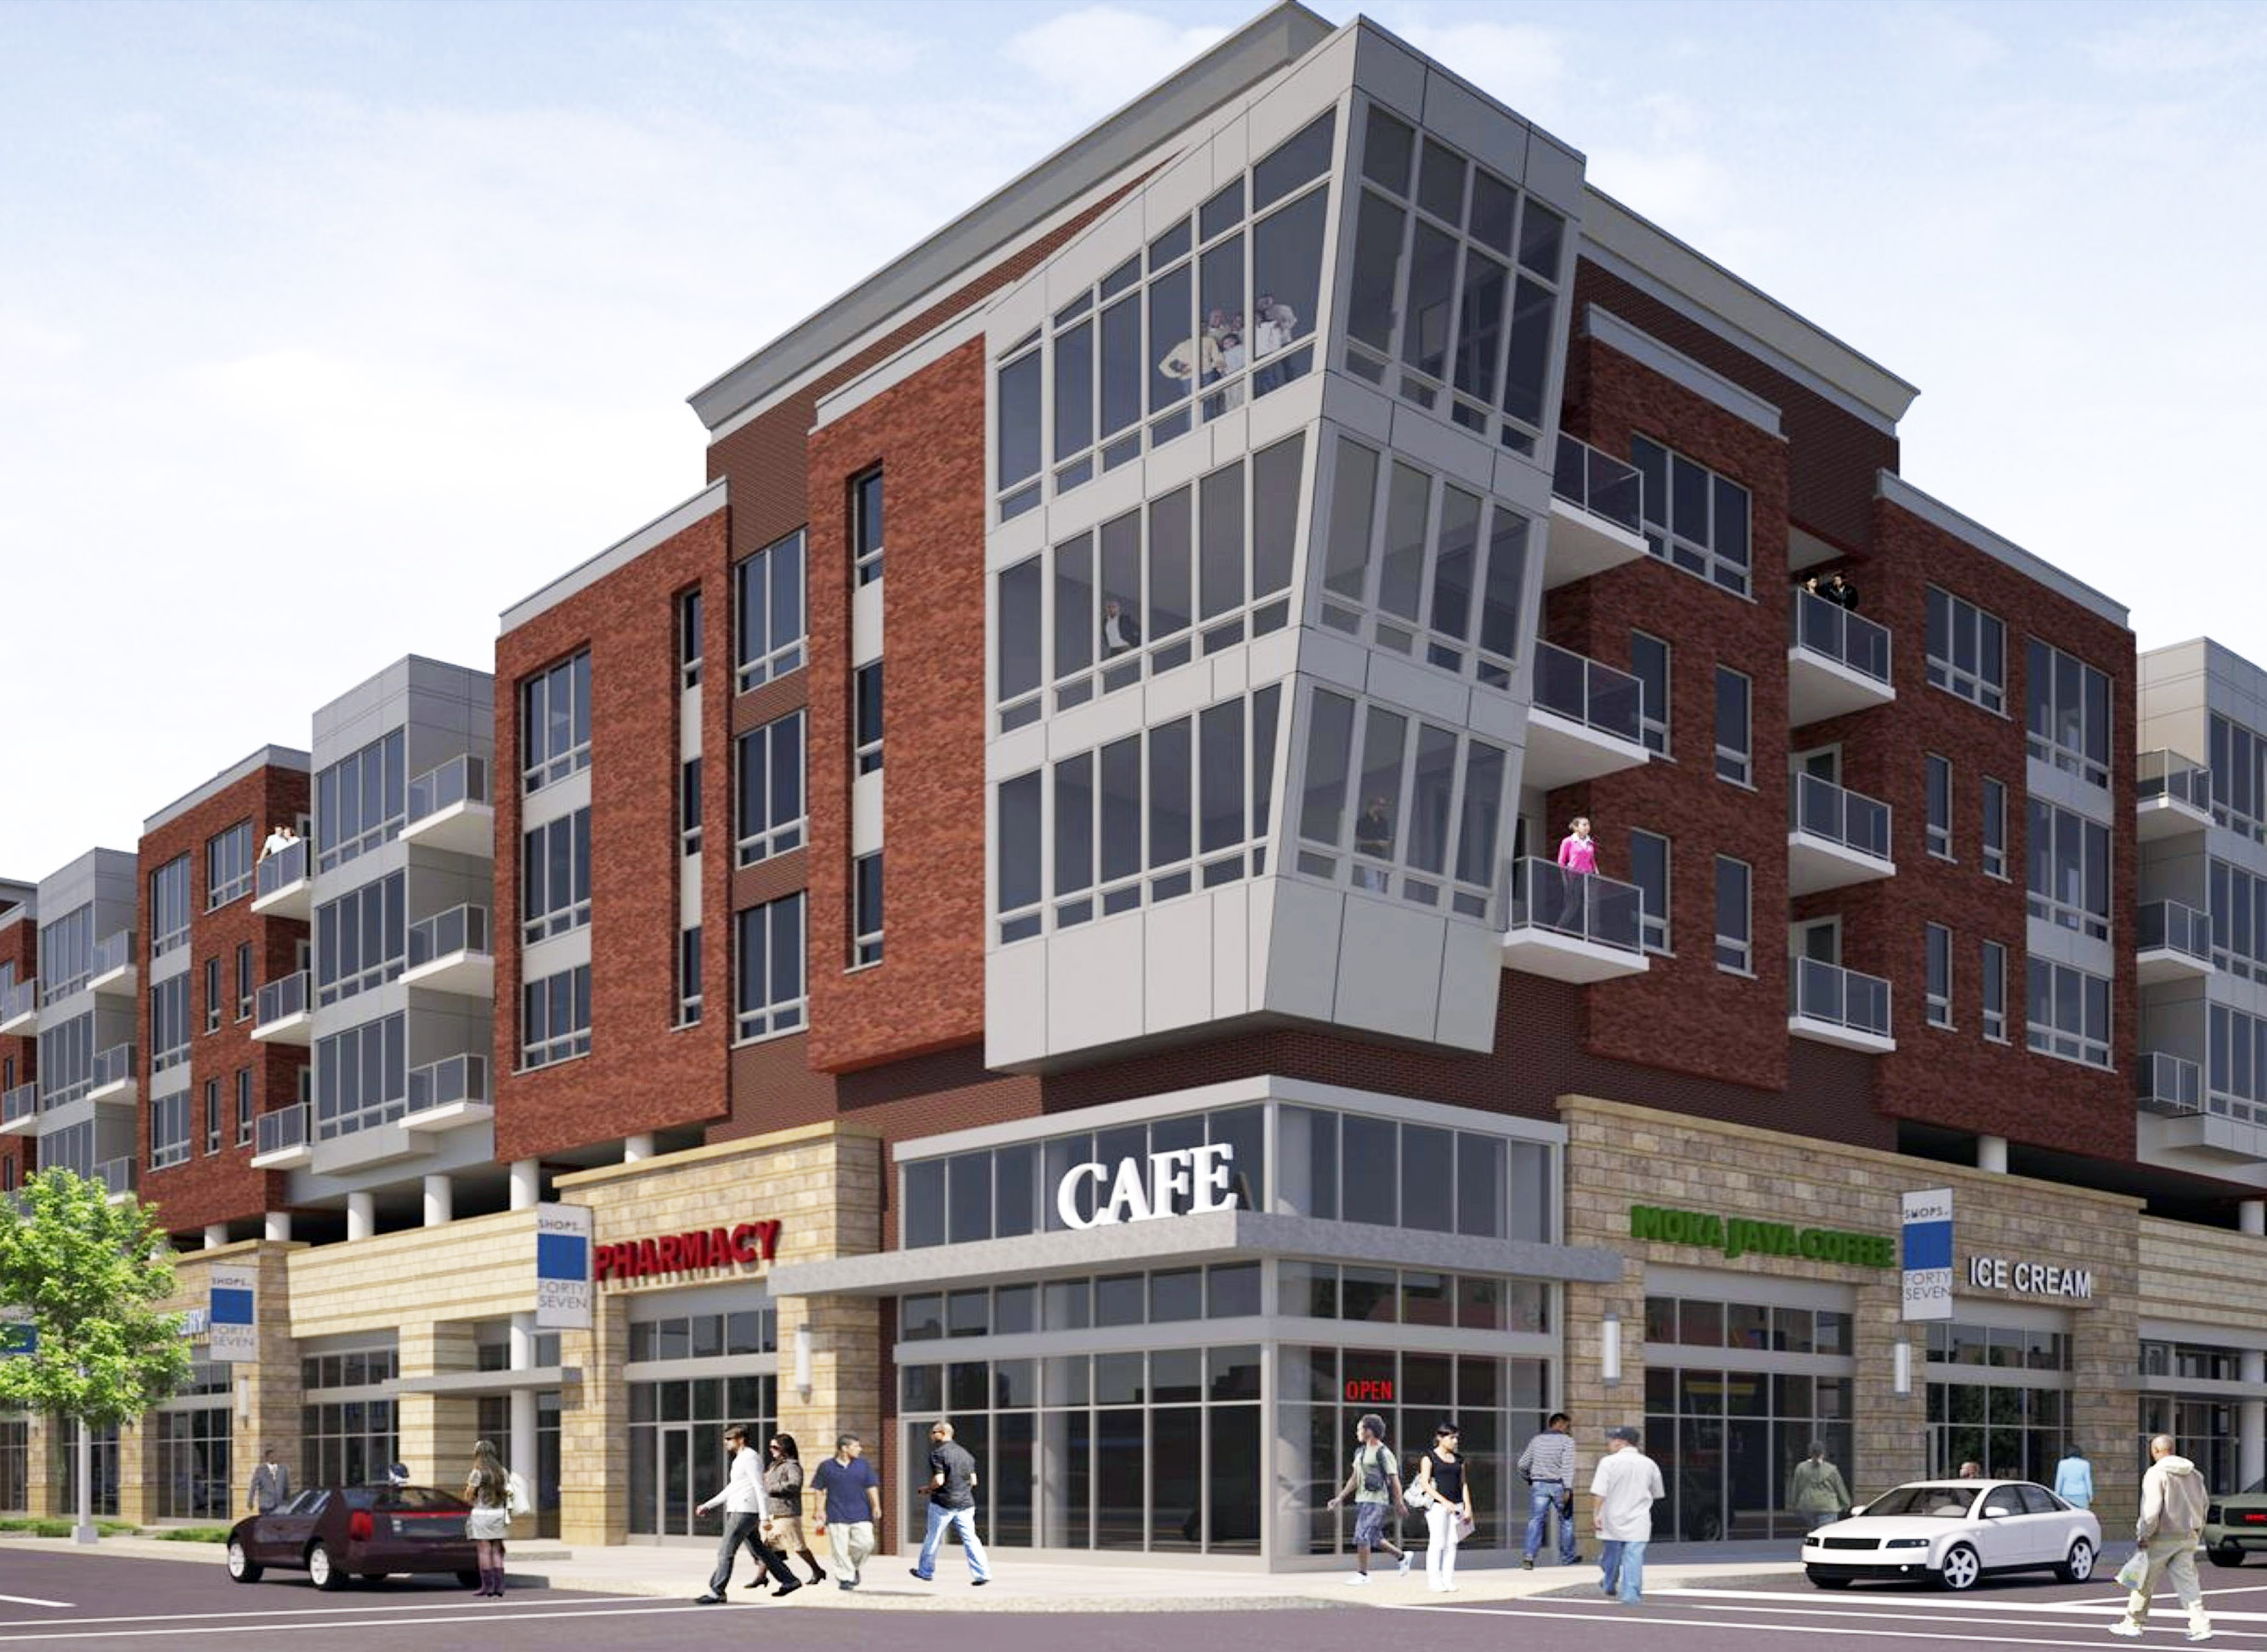 City Of Chicago Mayor Emanuel Celebrates Groundbreaking Of 47th Street Shops And Lofts In